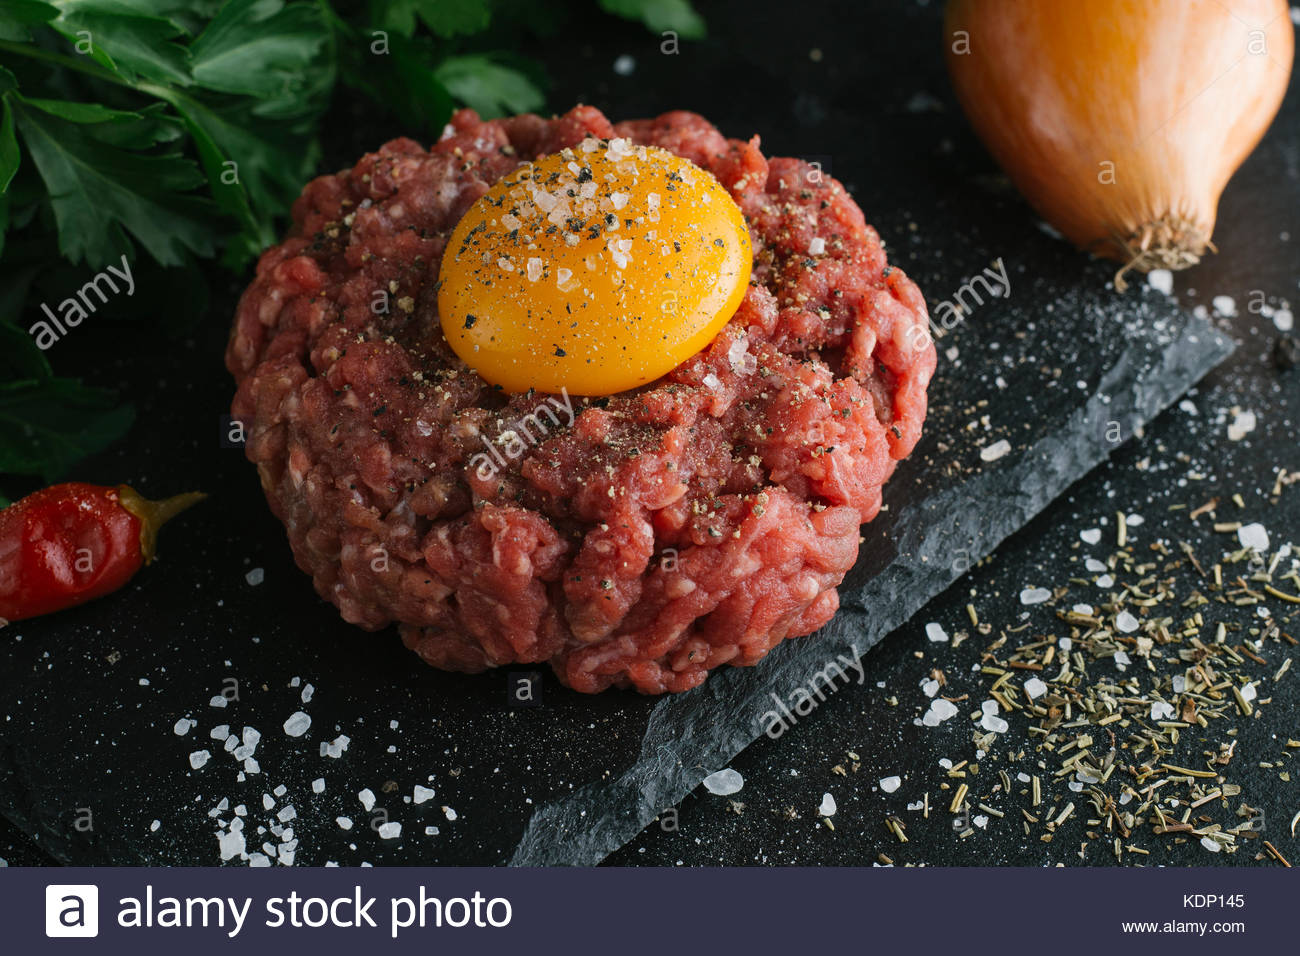 Tartare steak. Beef raw chopped meat with spices, herbs and egg yolk. Fresh, spicy, delicious, gourmet meal on dark - Stock Image